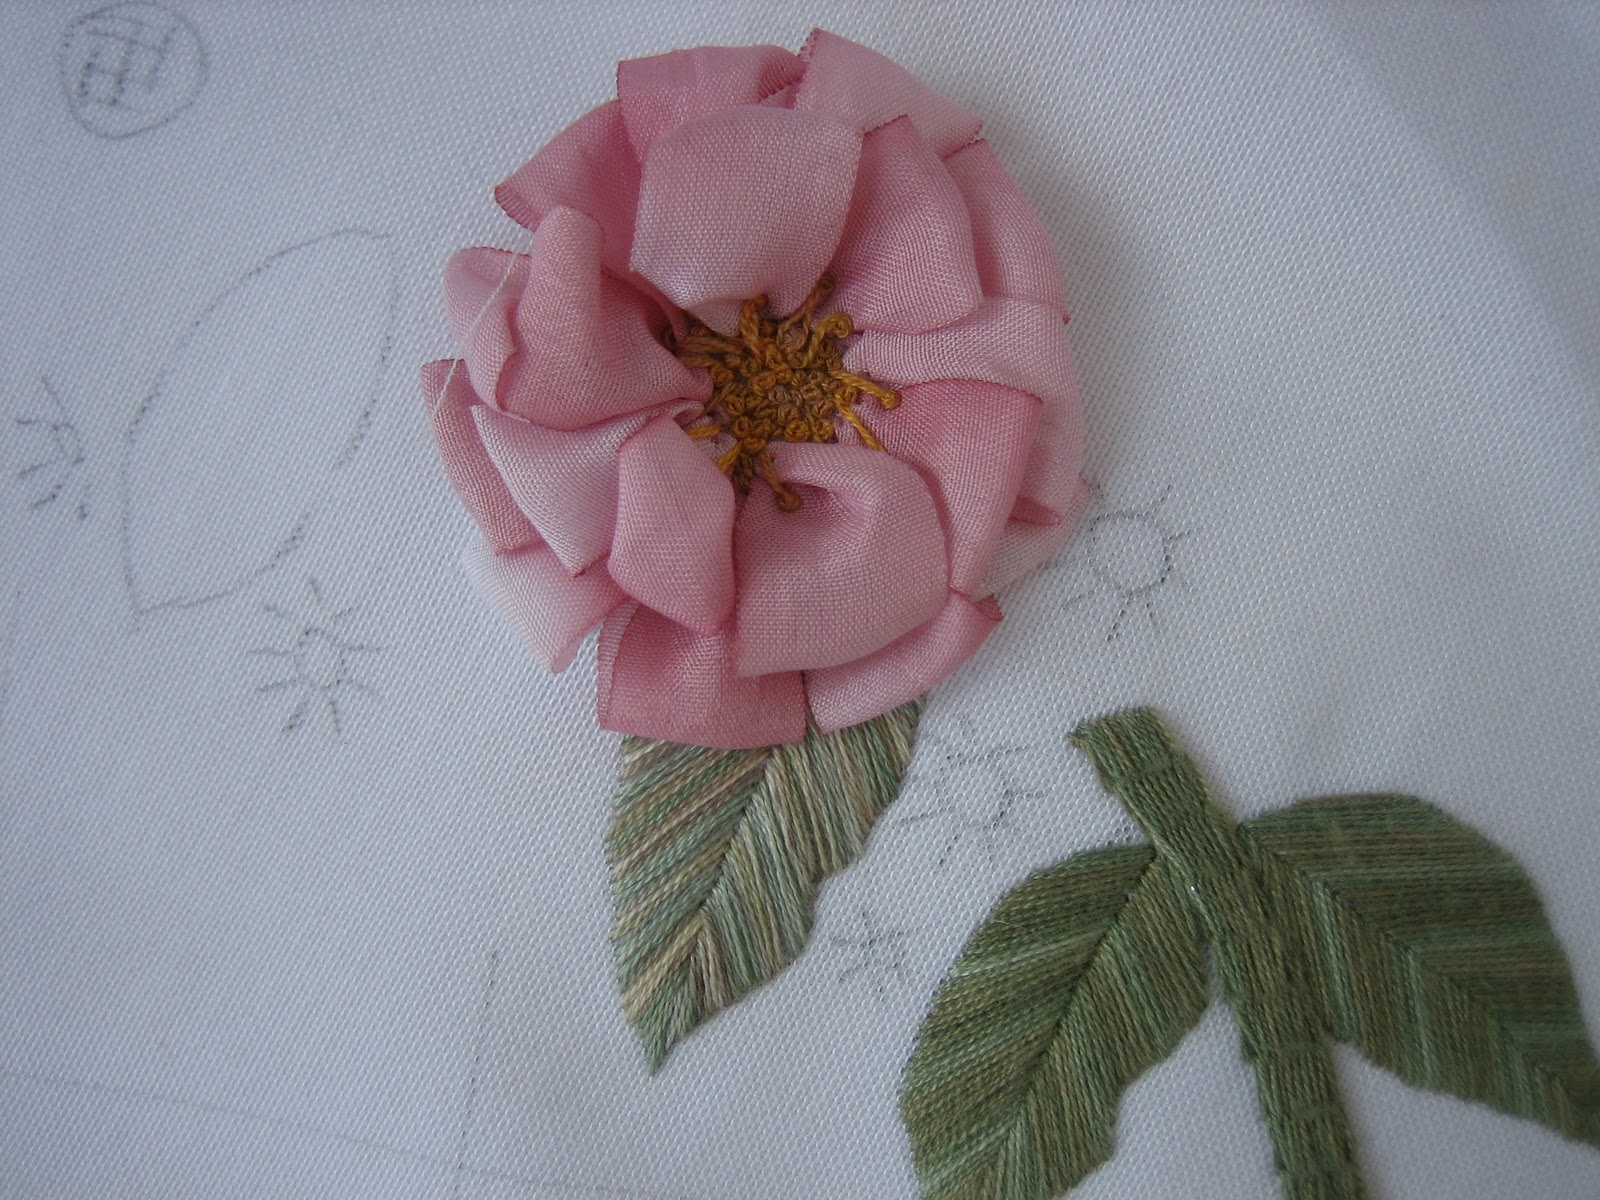 My hands work silk ribbon embroidery